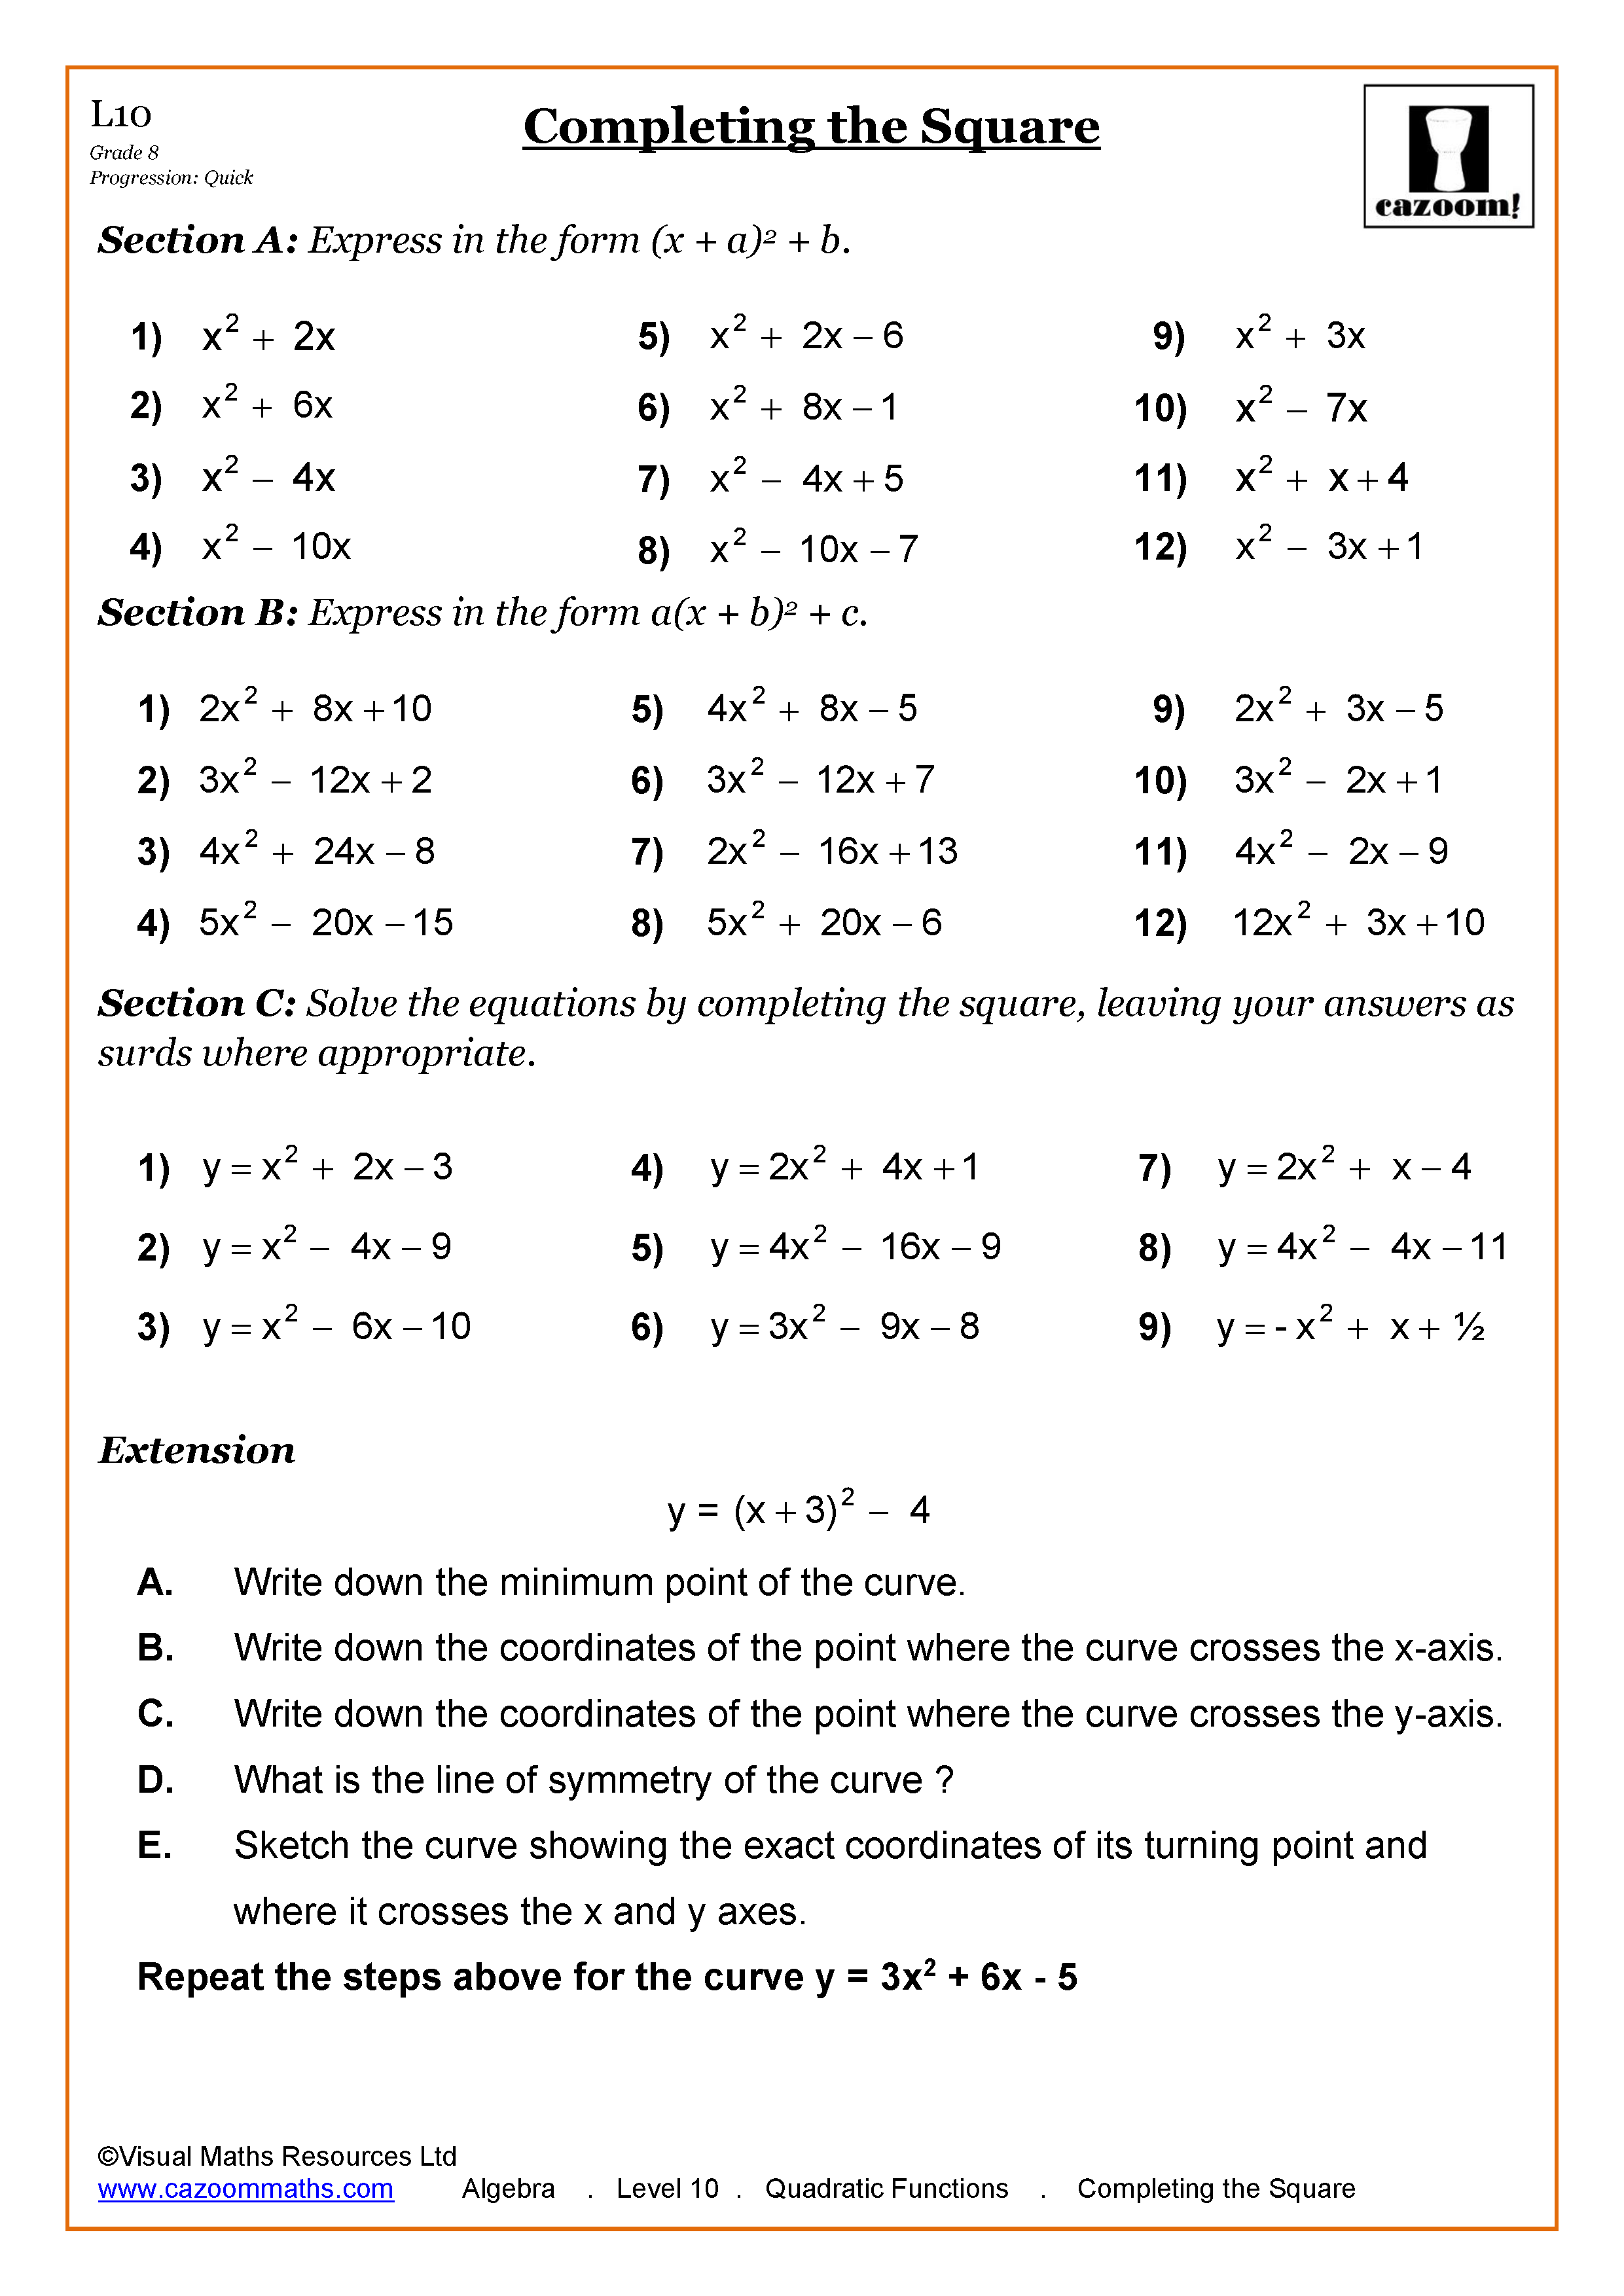 Fun Algebra Worksheets Ks3 And Ks4 Algebra Maths Resources In 2021 Algebra Worksheets Free Math Worksheets Algebra Resources